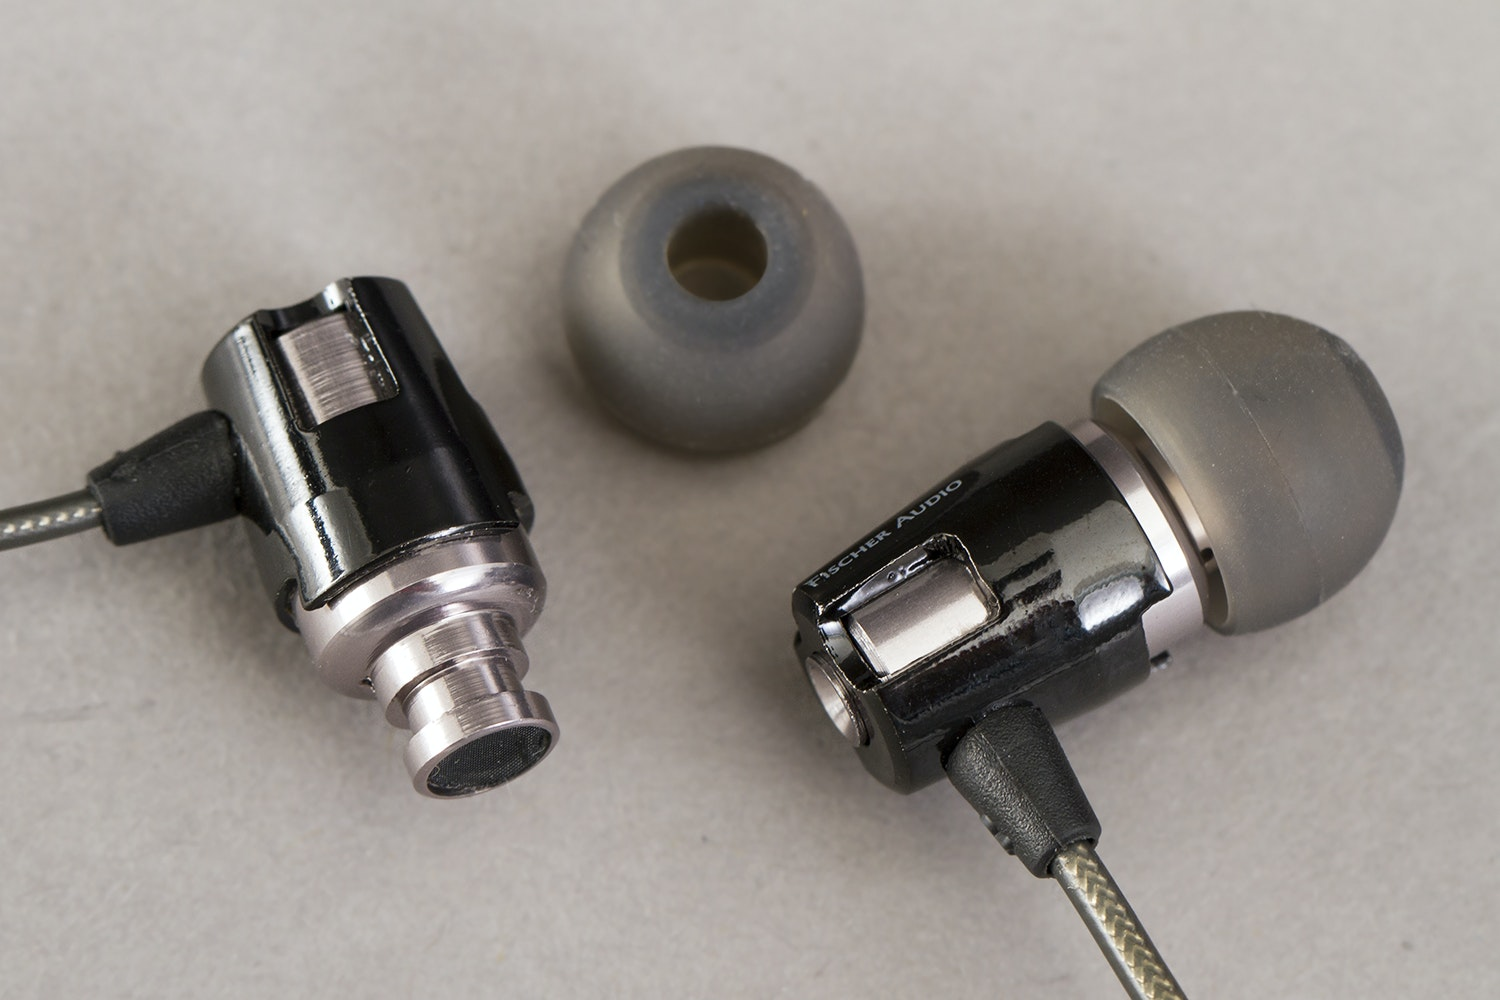 Fischer Audio Consonance V2 IEMs